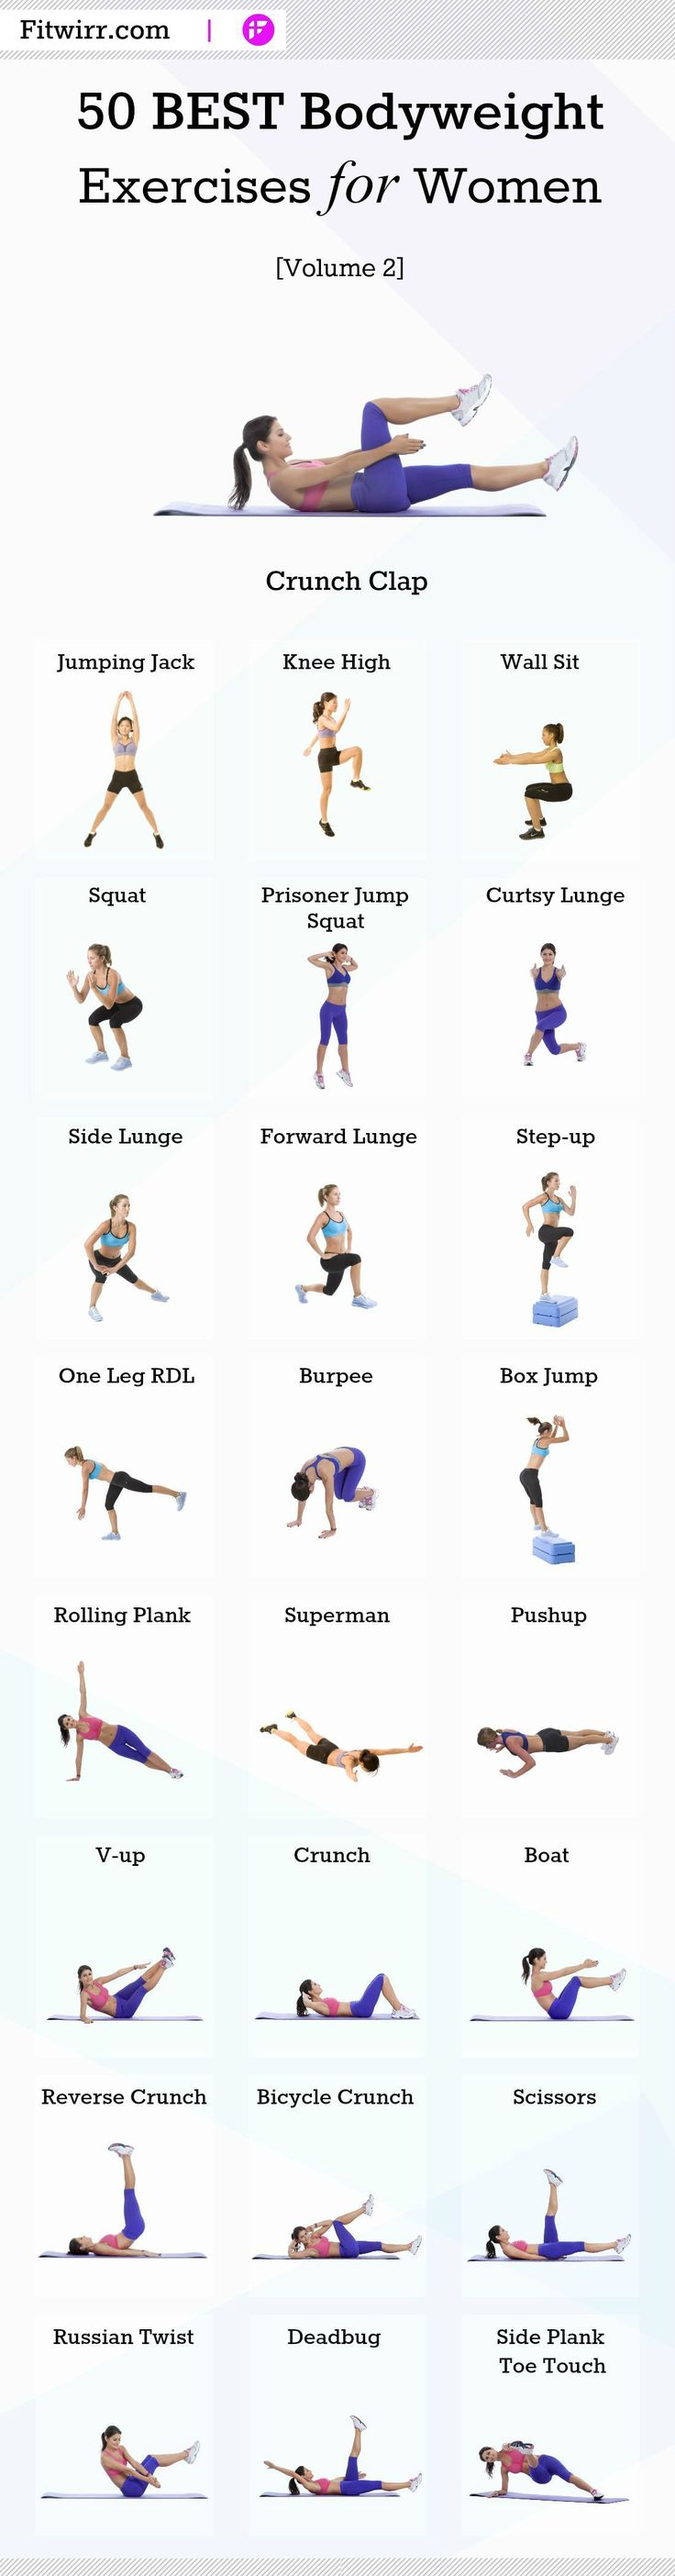 50 best bodyweight exercises for women to get in shape at home.